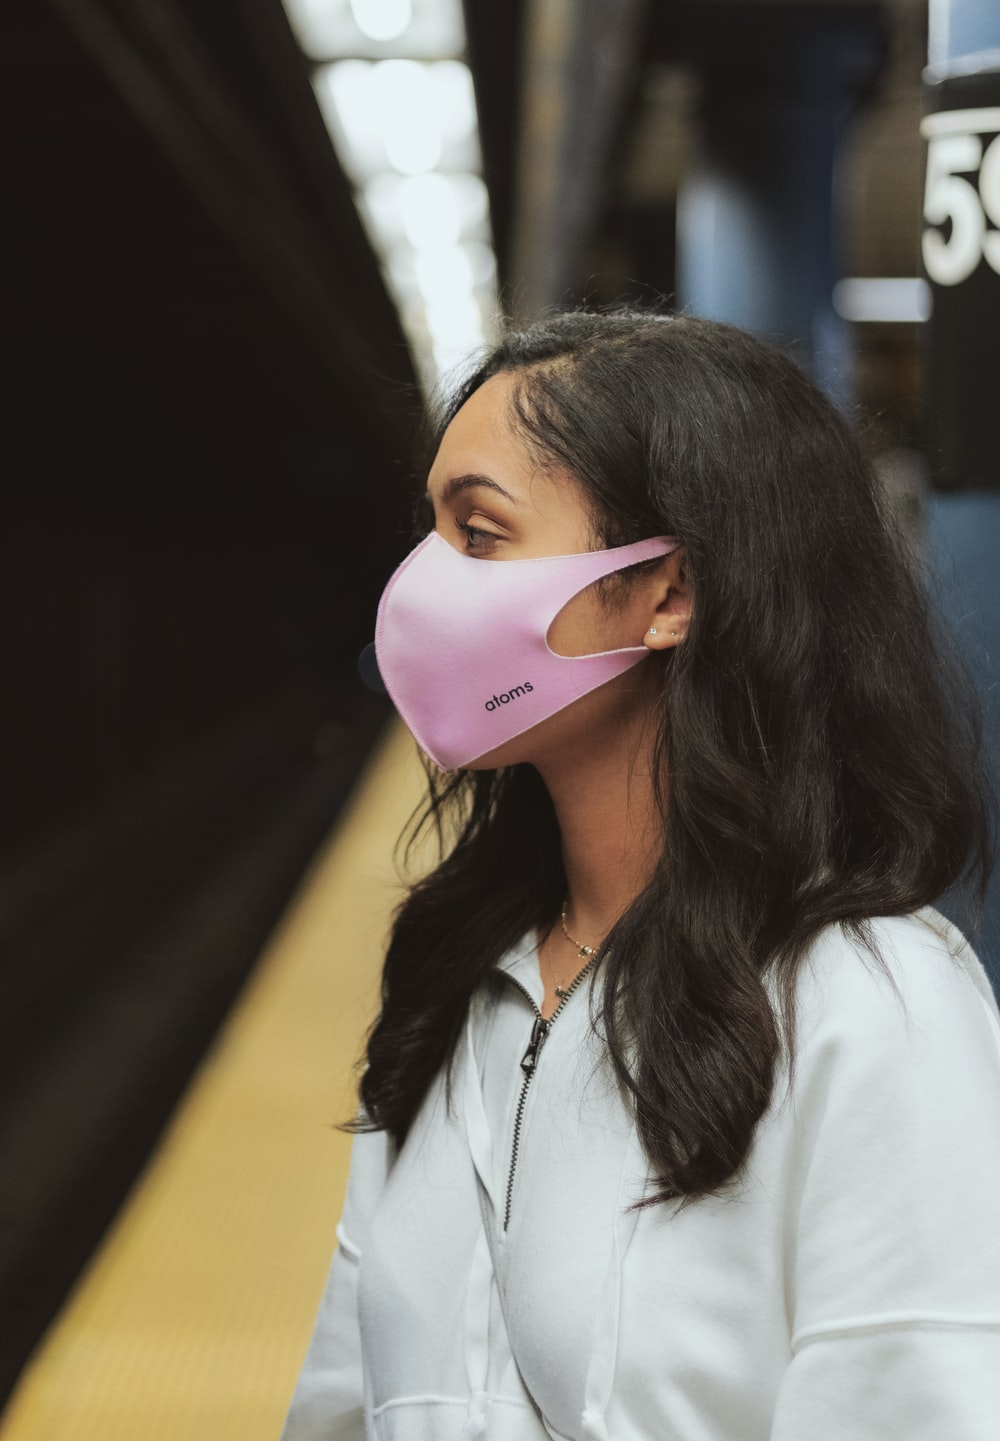 woman in white collared shirt wearing pink mask